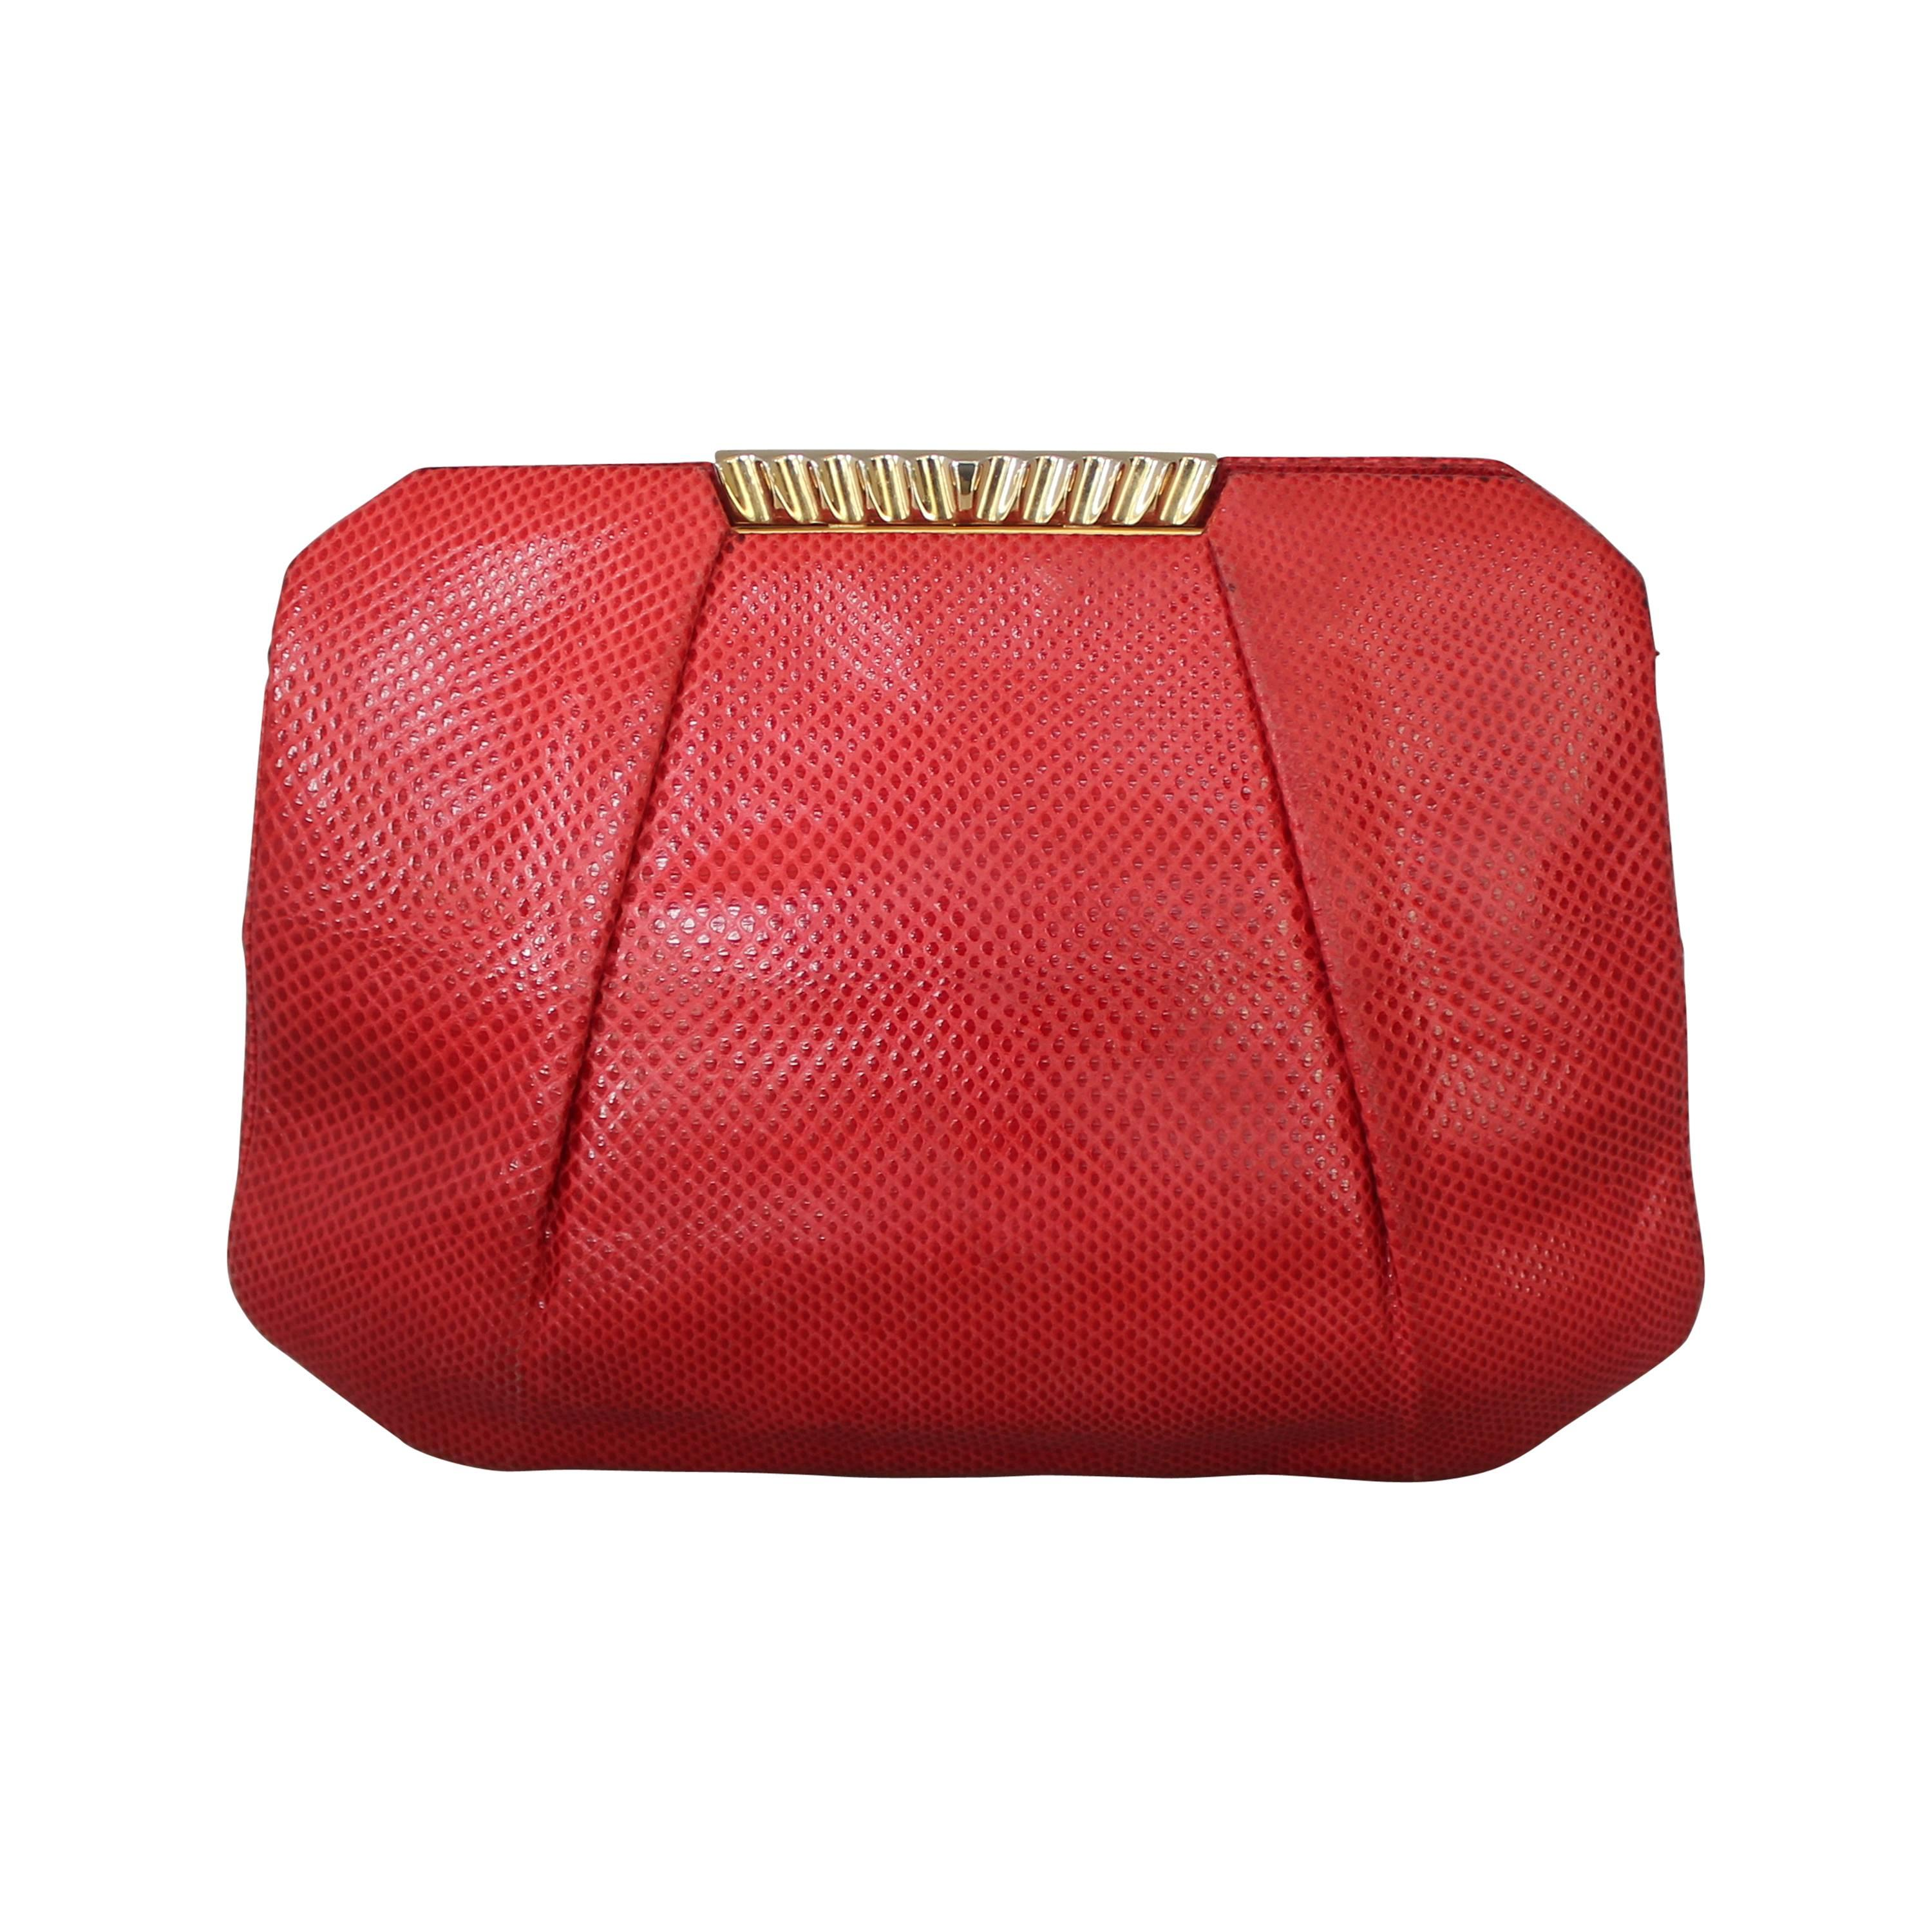 1stdibs Unknown Red Crocodile Fold-over Clutch hzQiDGiL